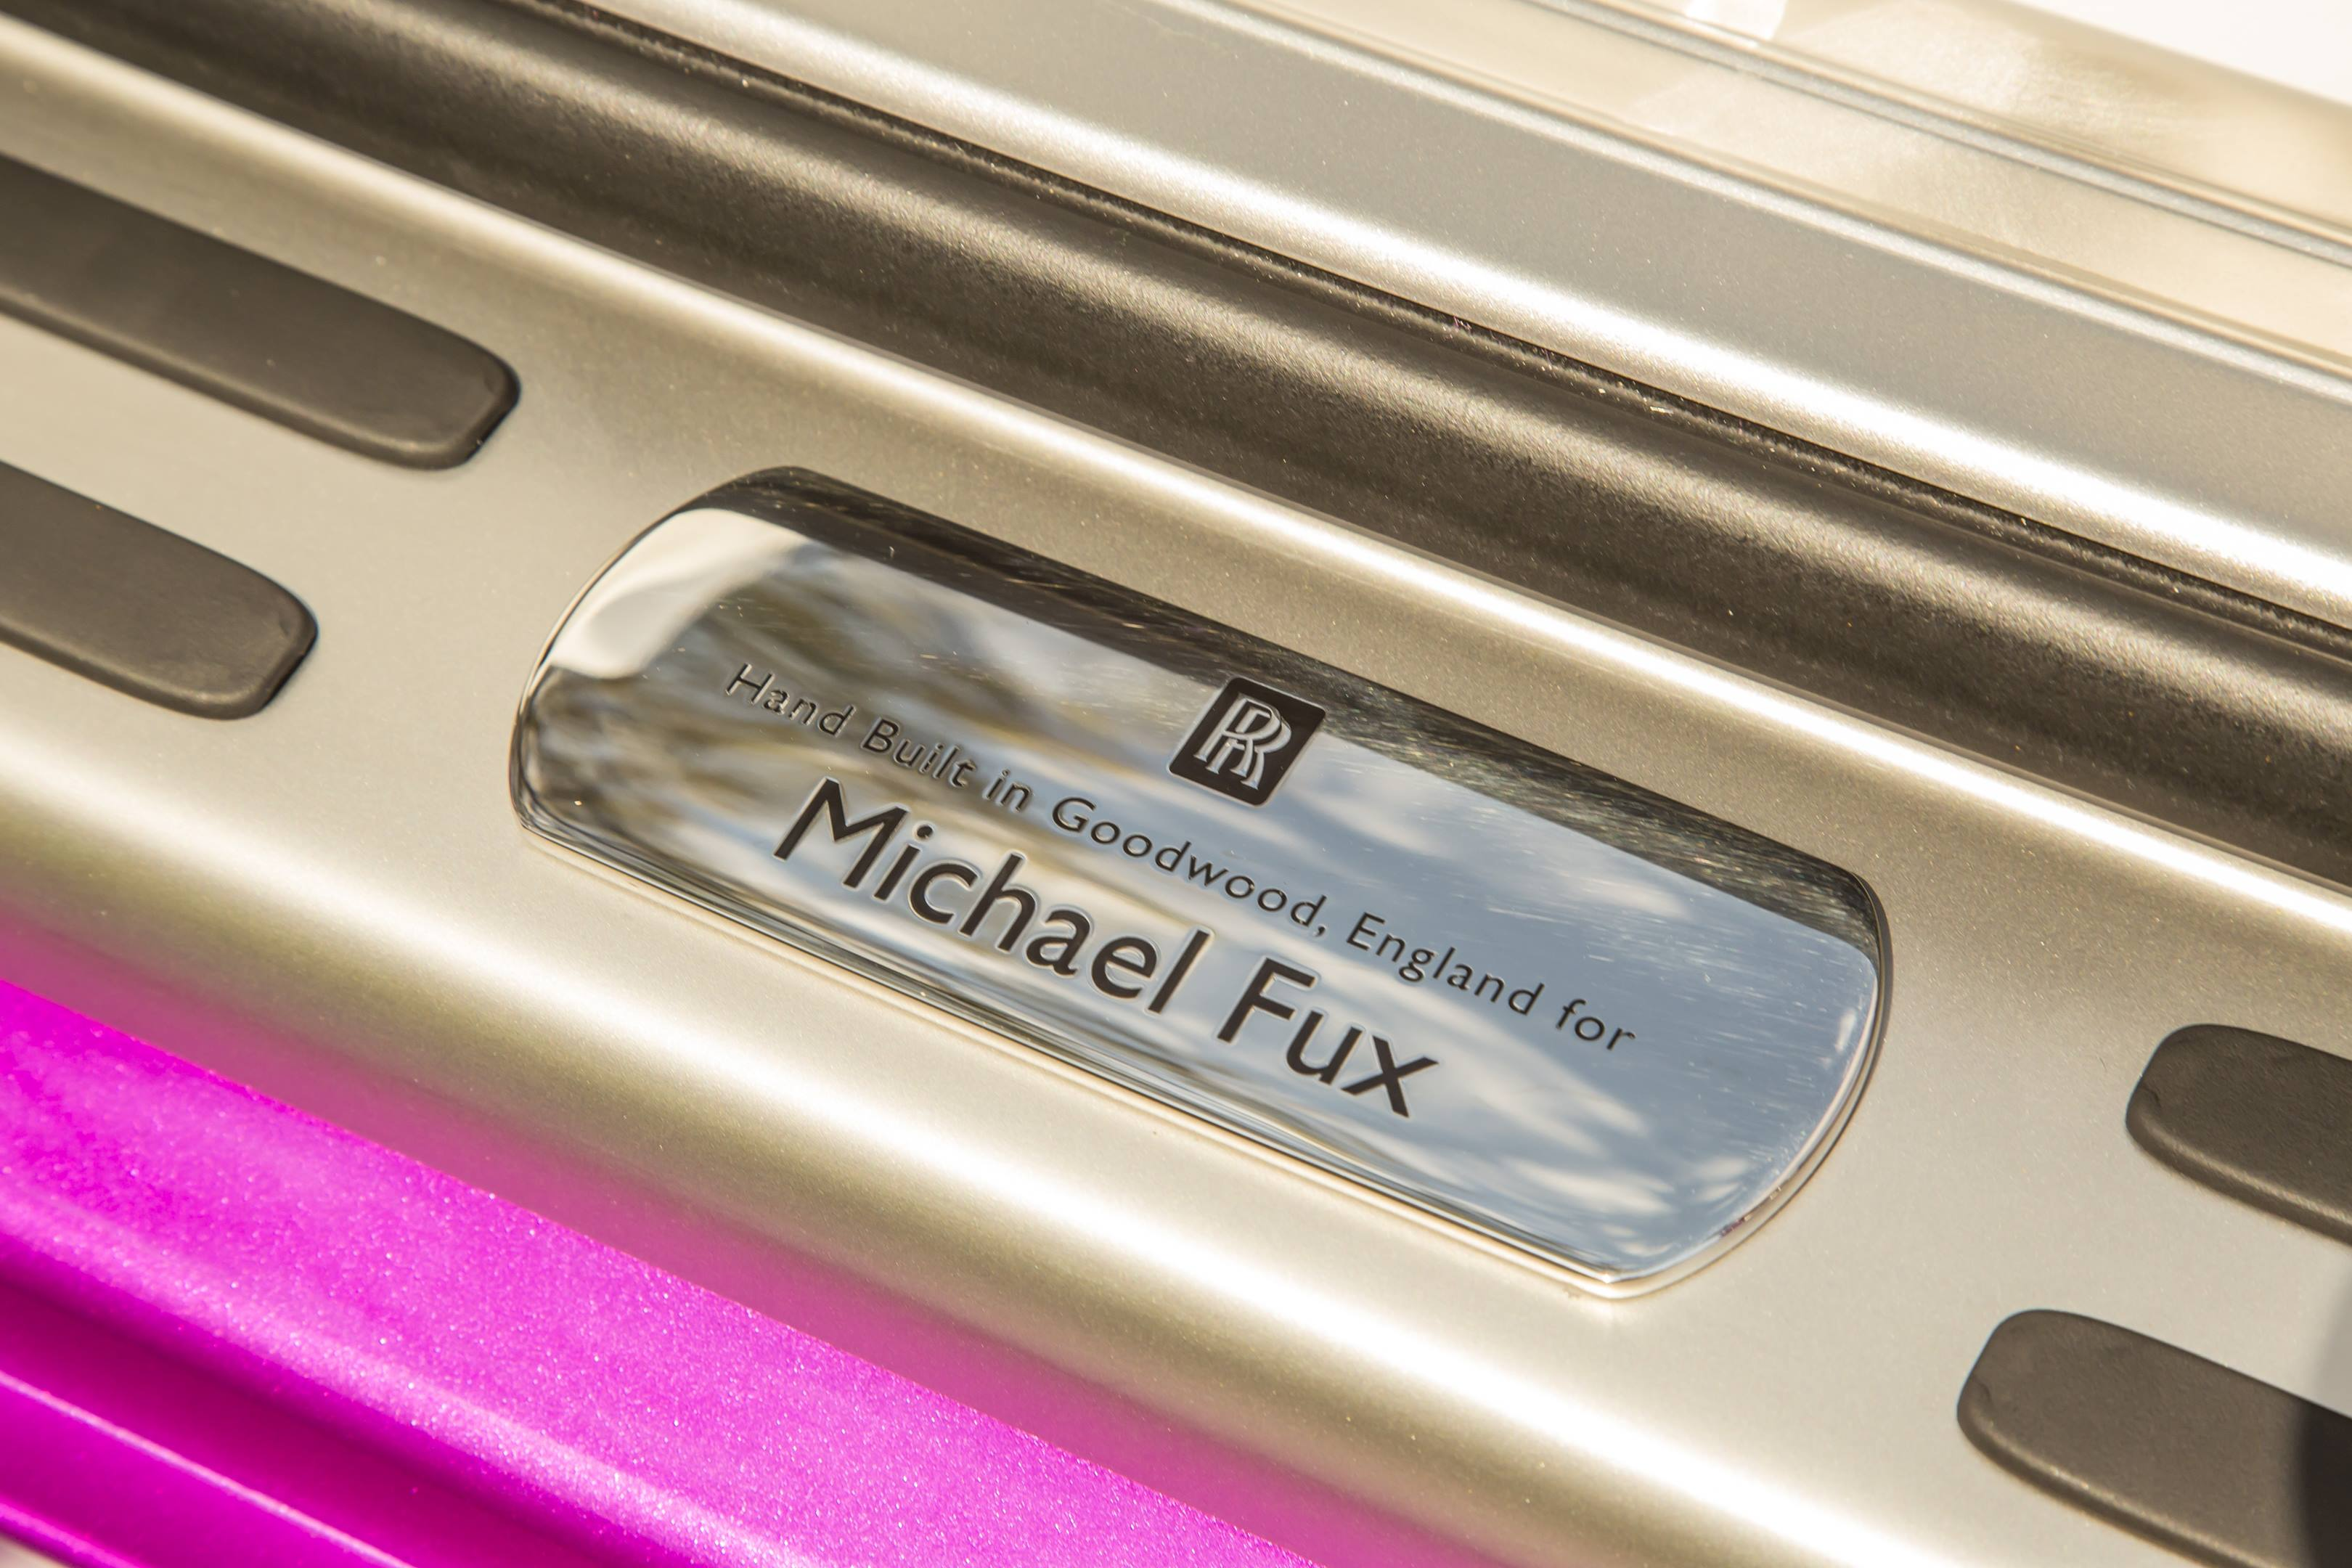 Michael Fux's Rolls-Royce Dawn convertible plaque